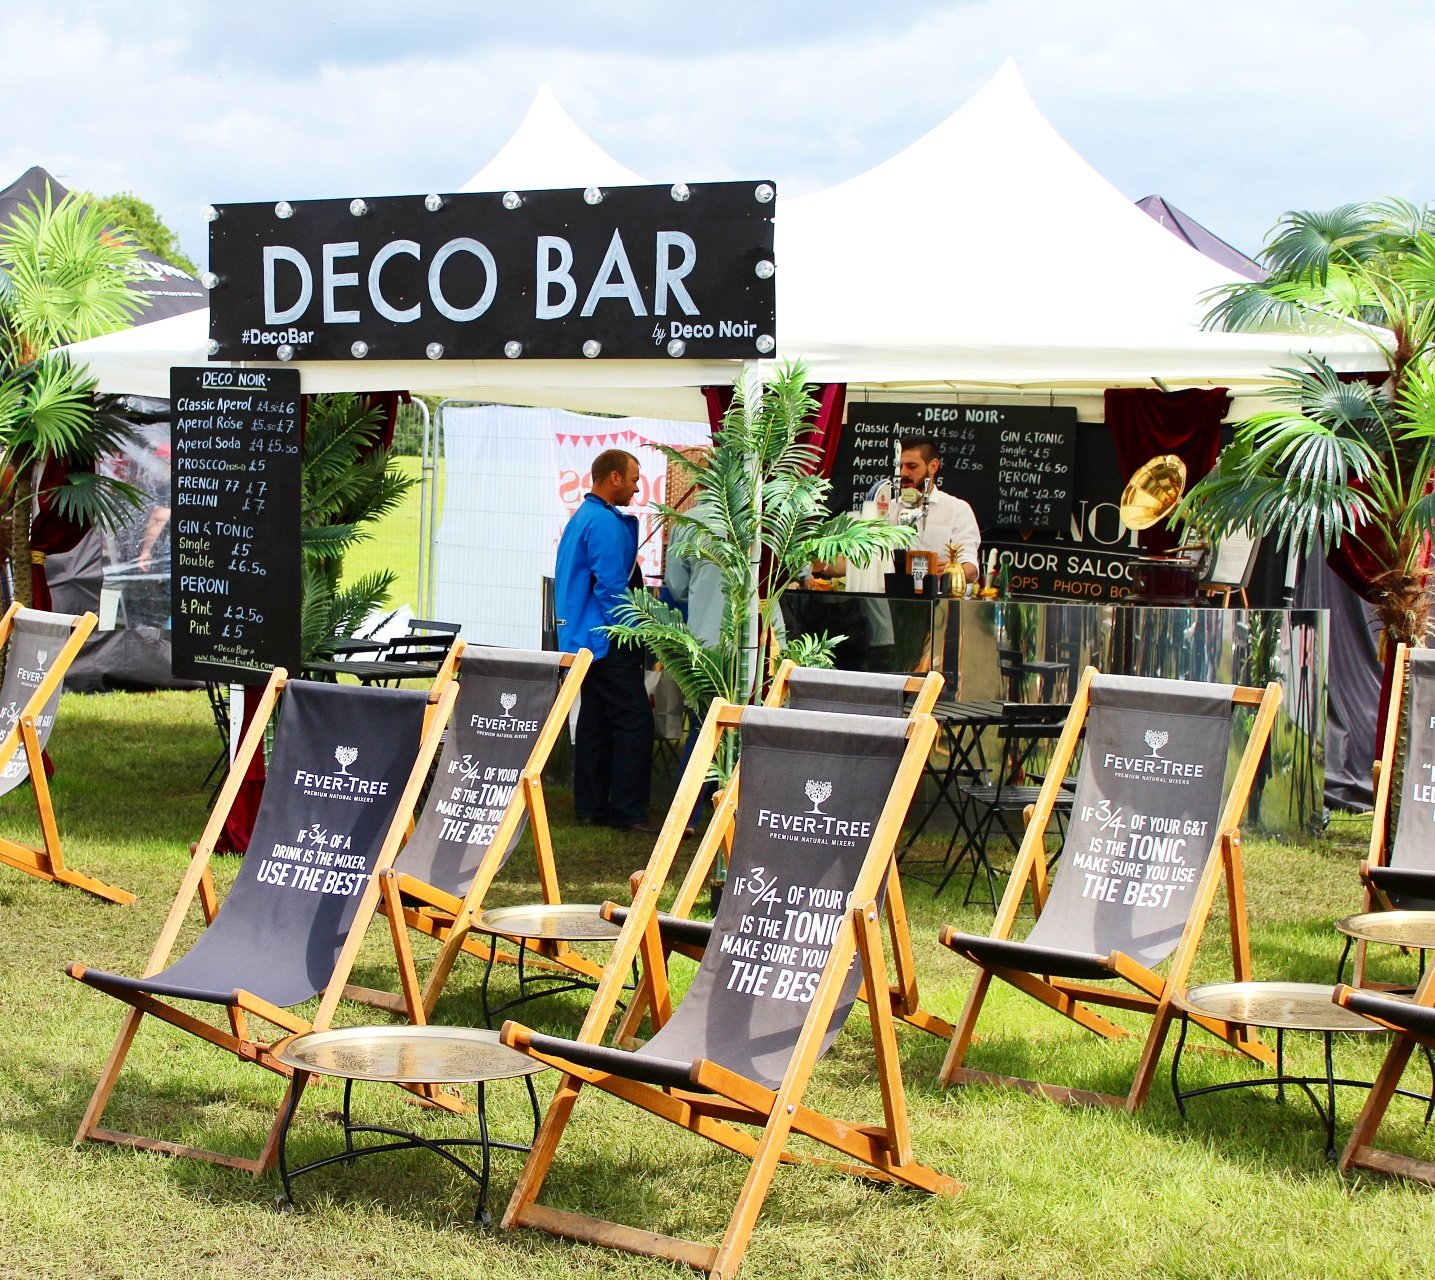 Edinburgh Foodie Festival | Deco Bar